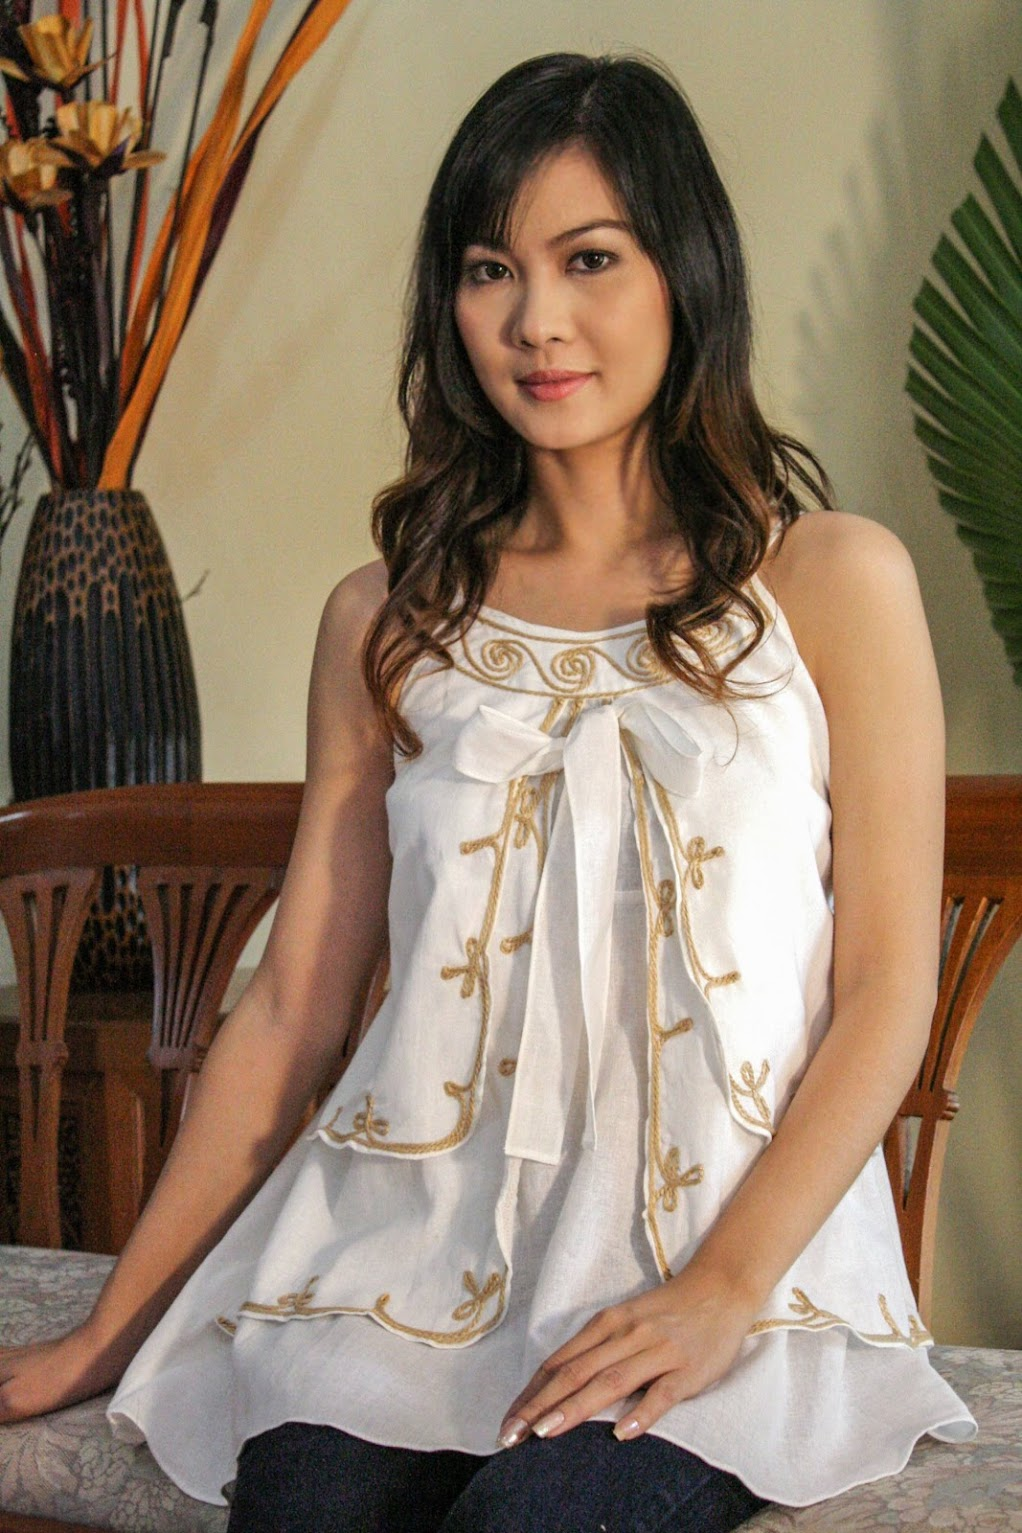 https://www.novica.com/p/embroidered-cotton-tank-top-waves/154496/